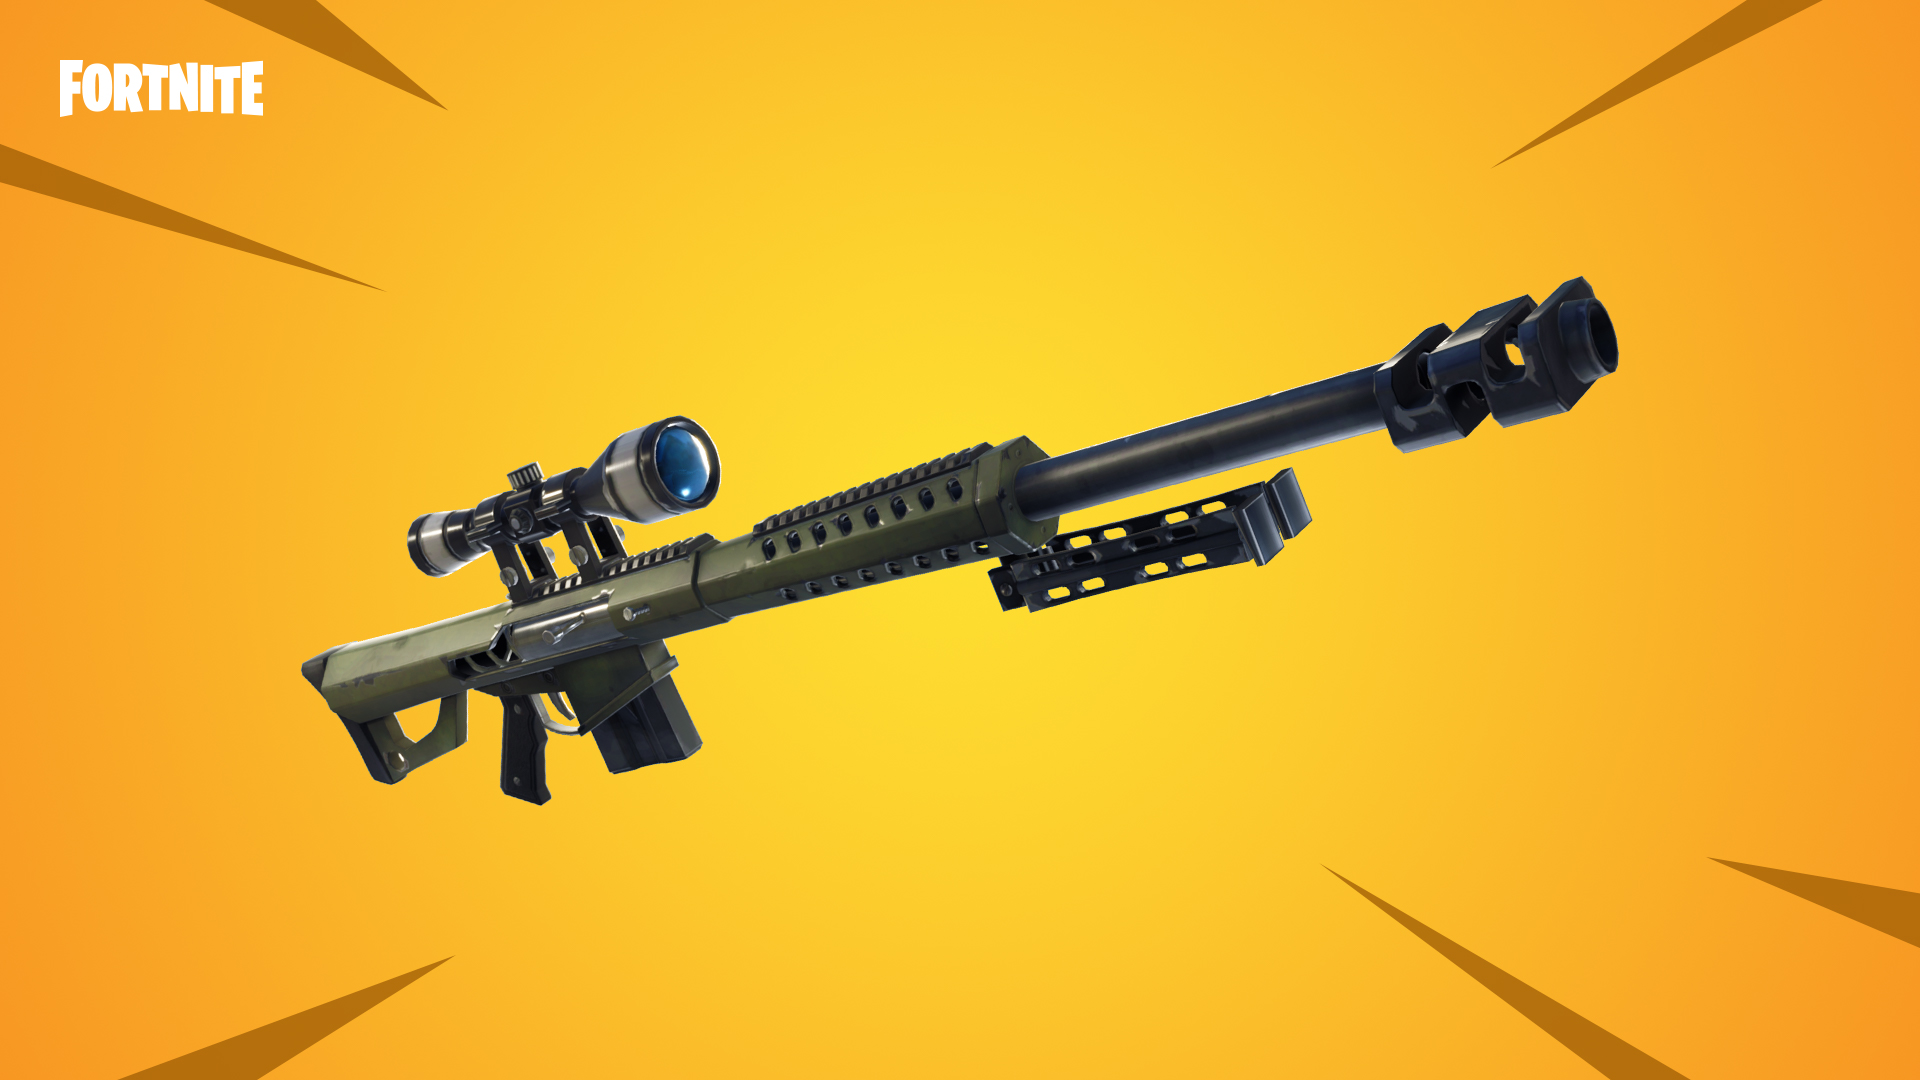 fortnite patch notes - photo #42